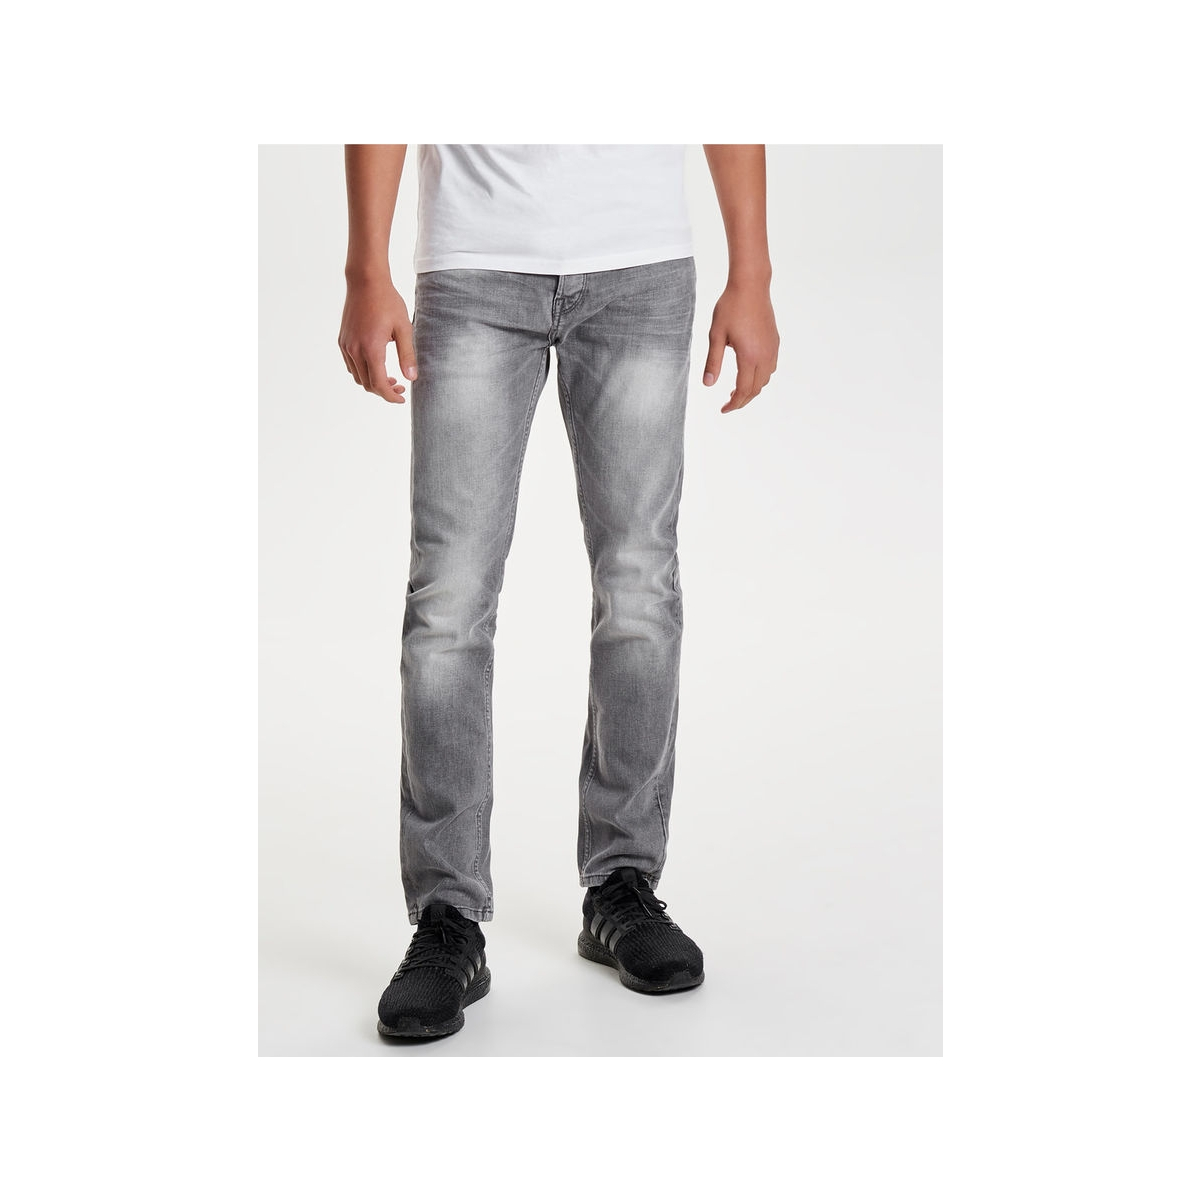 onsloom grey dcc 8532 noos 22008532 only & sons jeans grey denim